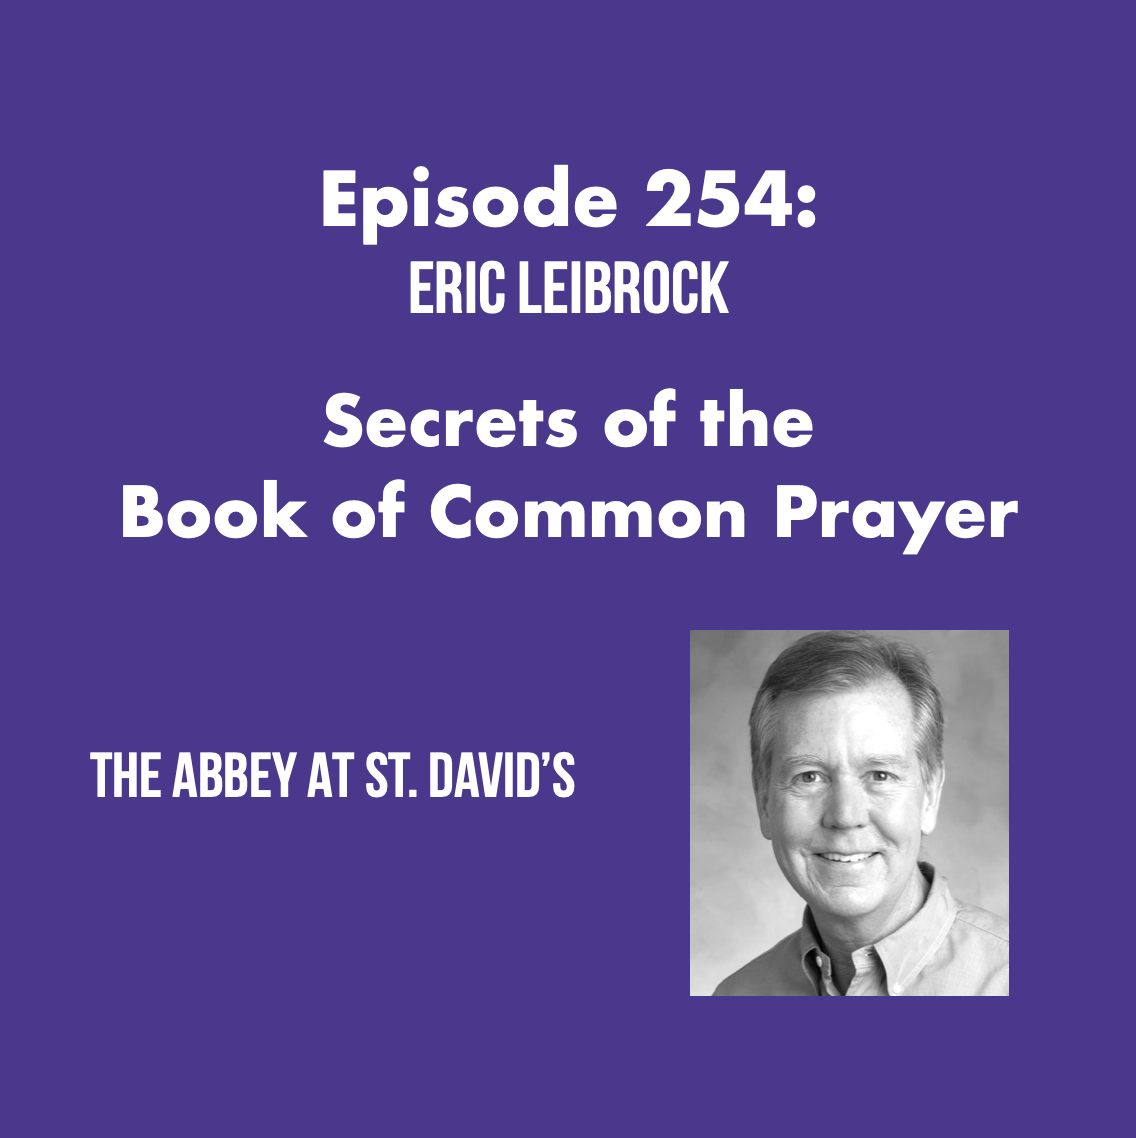 Episode 254: Secrets of the Book of Common Prayer with Eric Leibrock